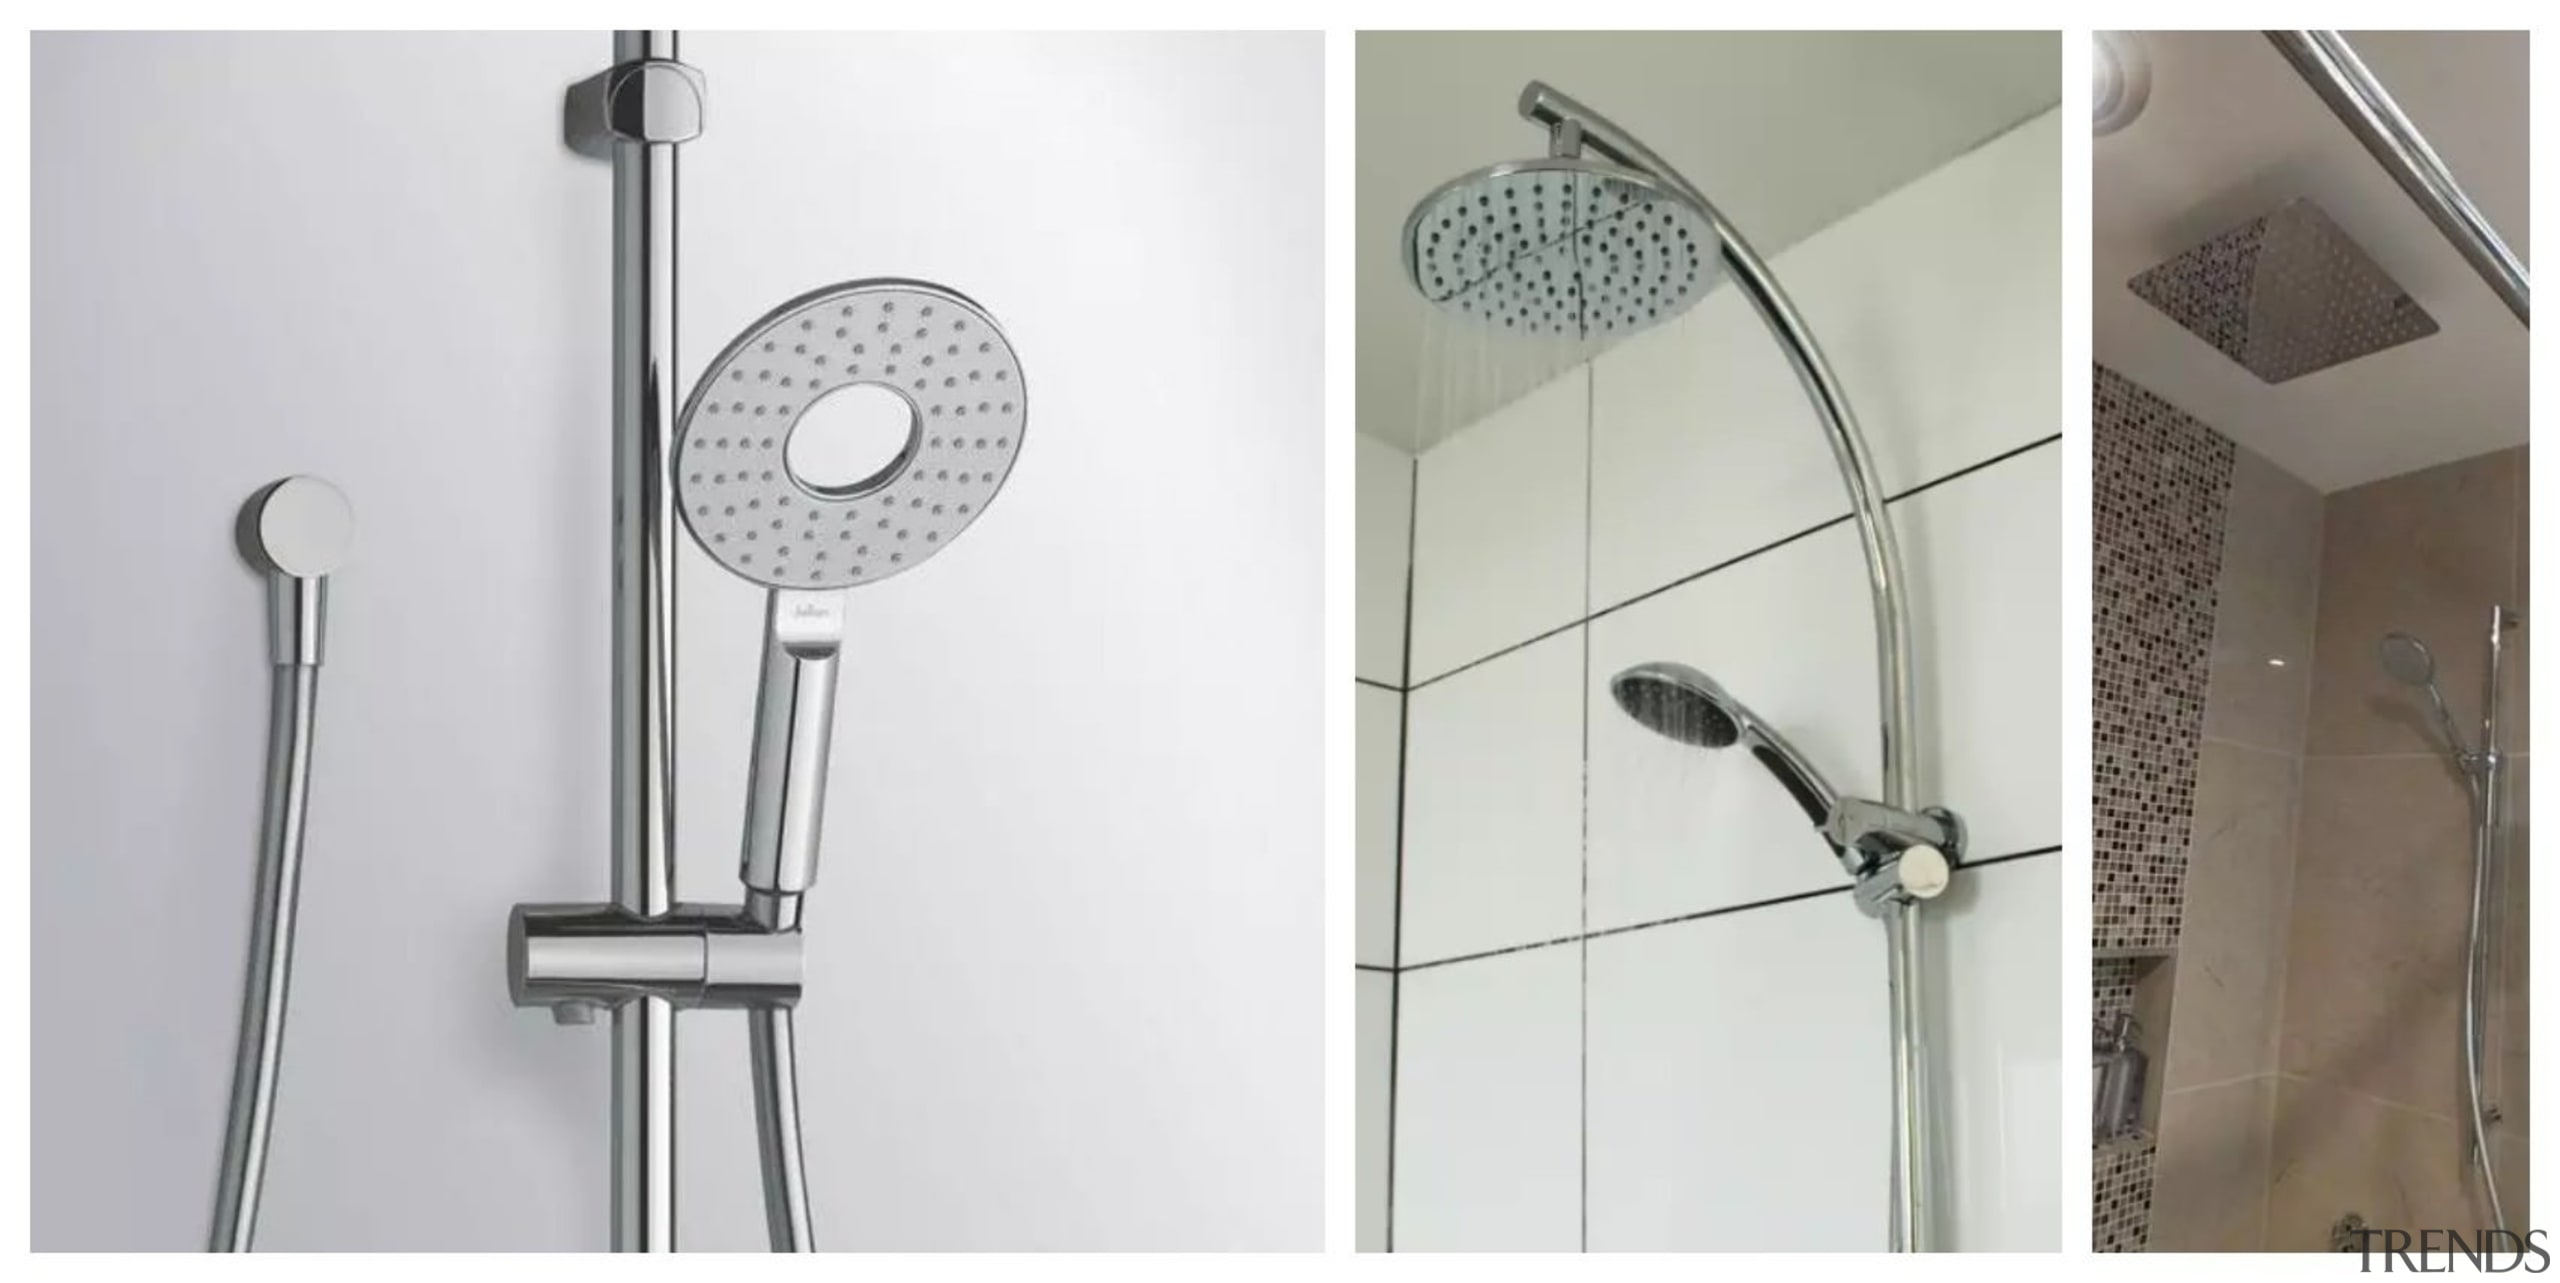 Picking the right shower head for you - plumbing fixture, product design, shower, tap, white